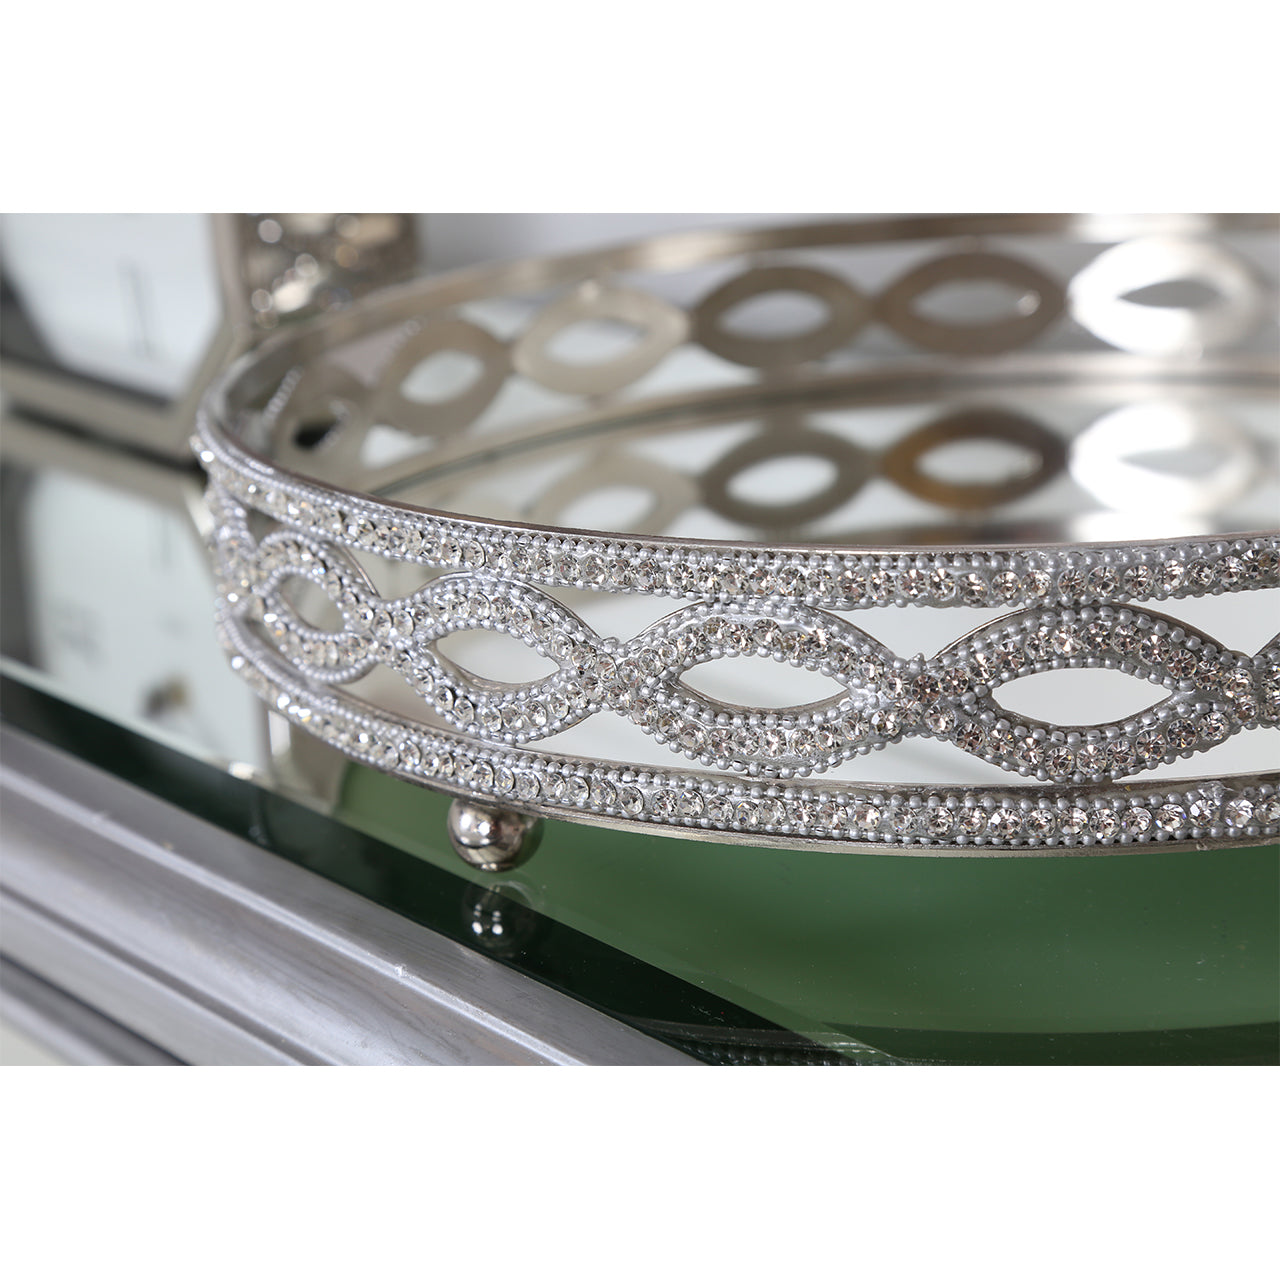 Mirrored Crystal Tray